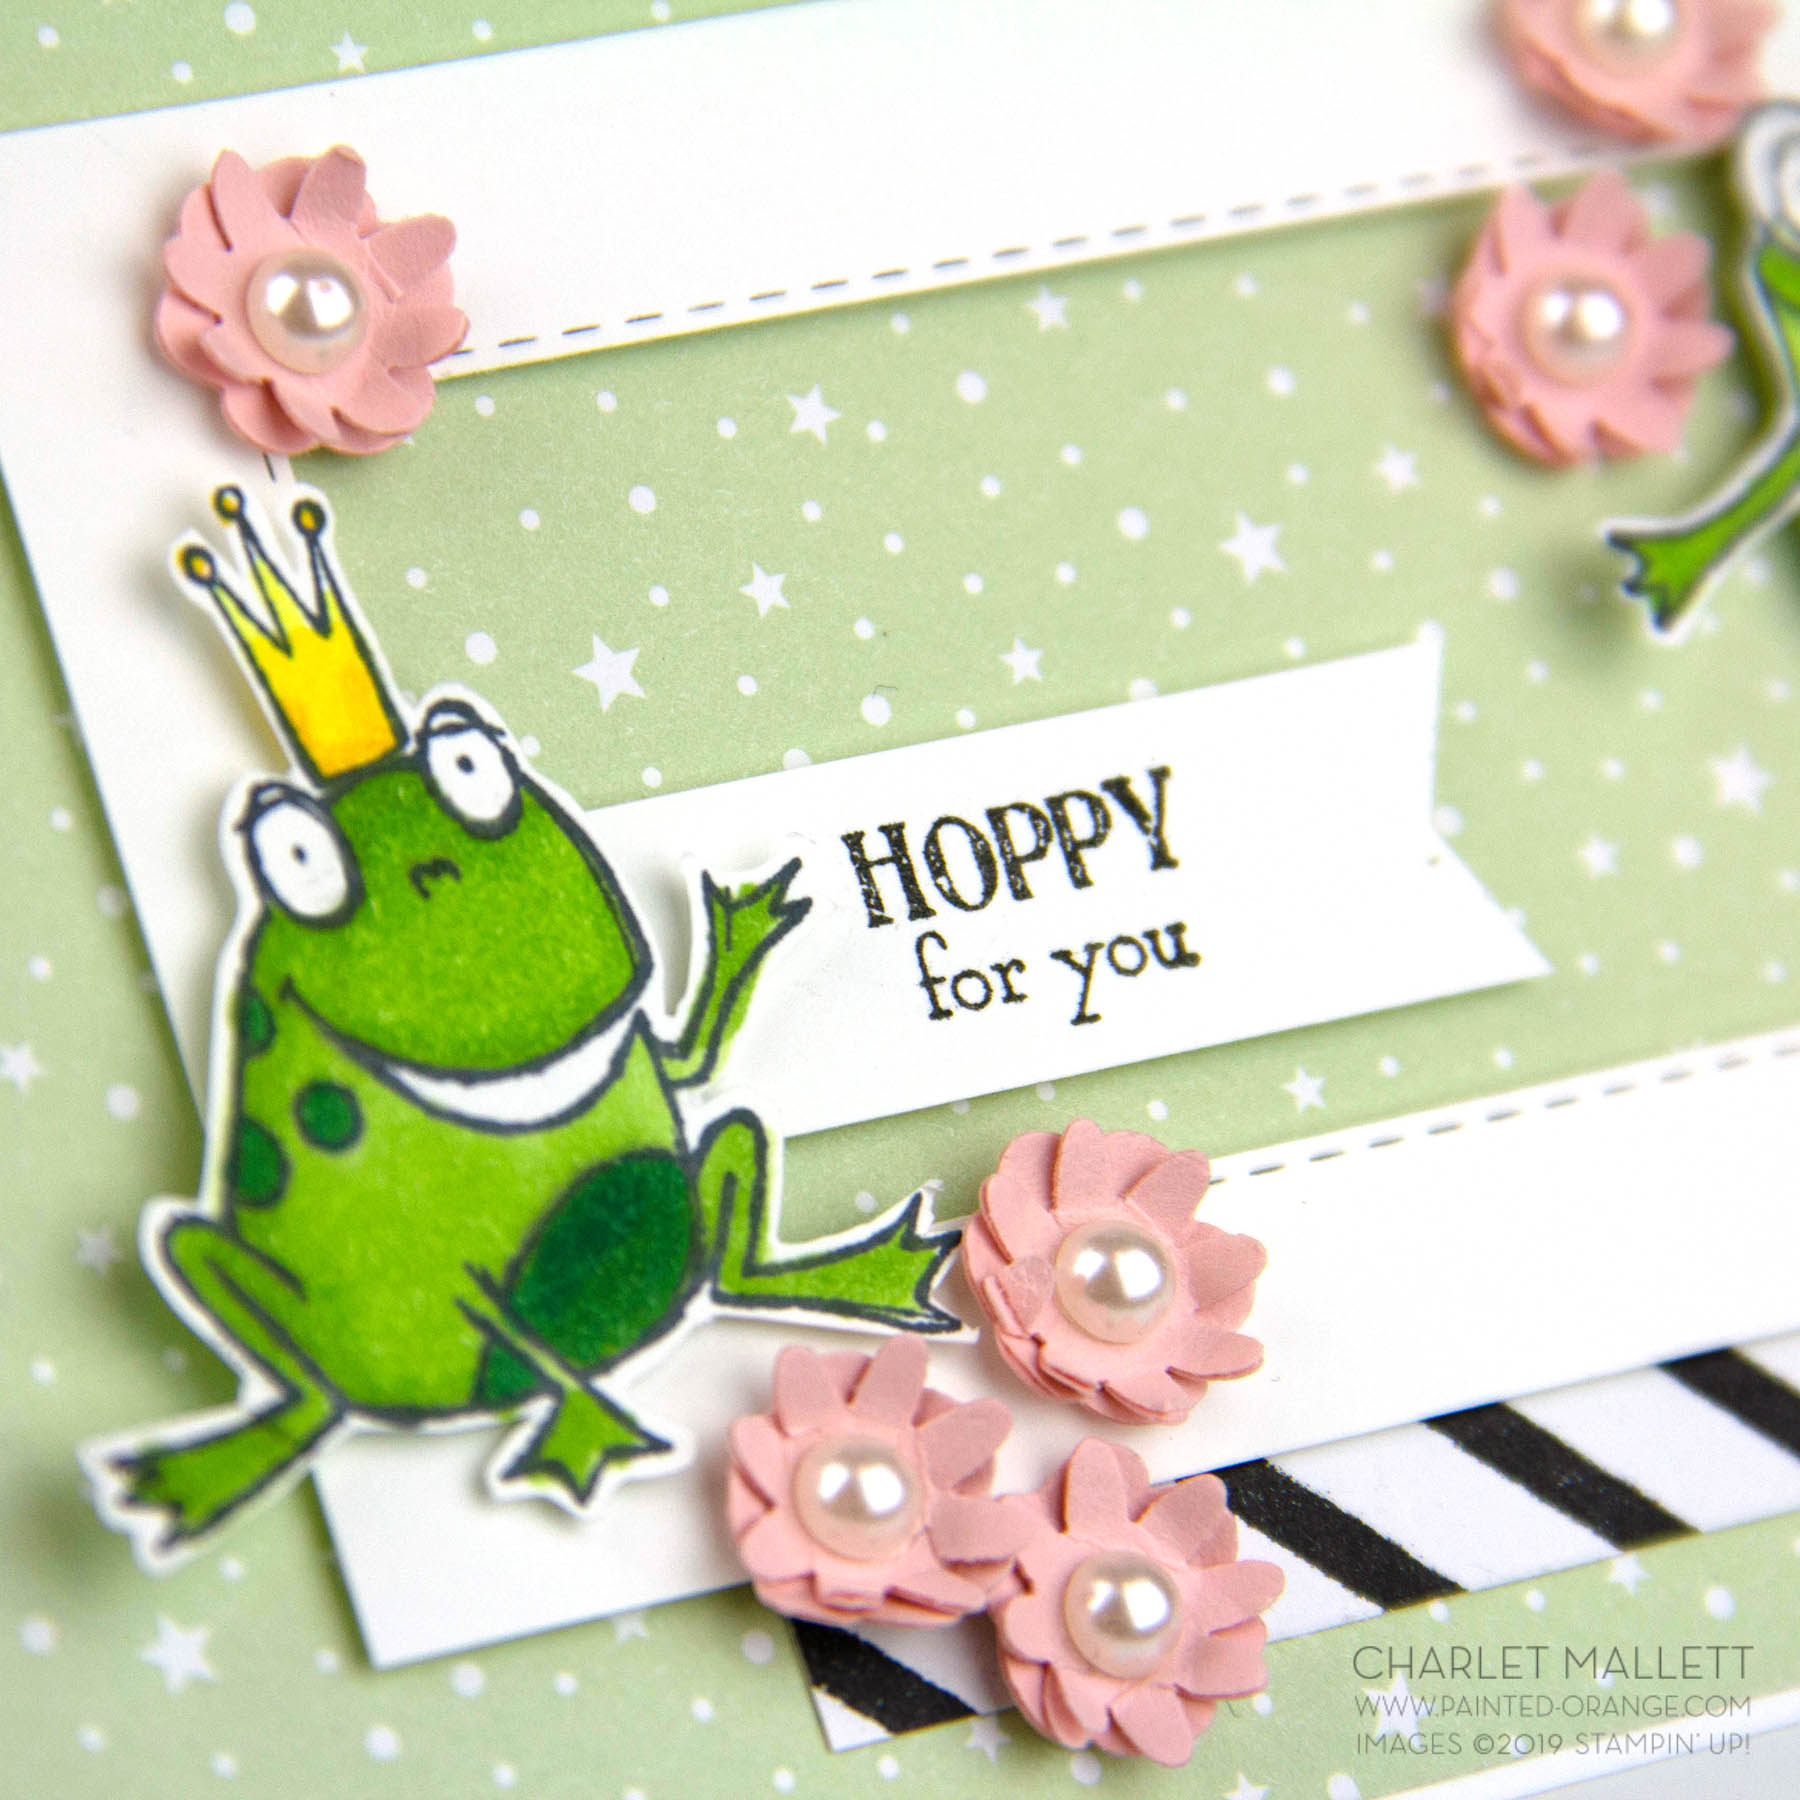 So Hoppy Together frog card- Charlet Mallett, Stampin' Up!